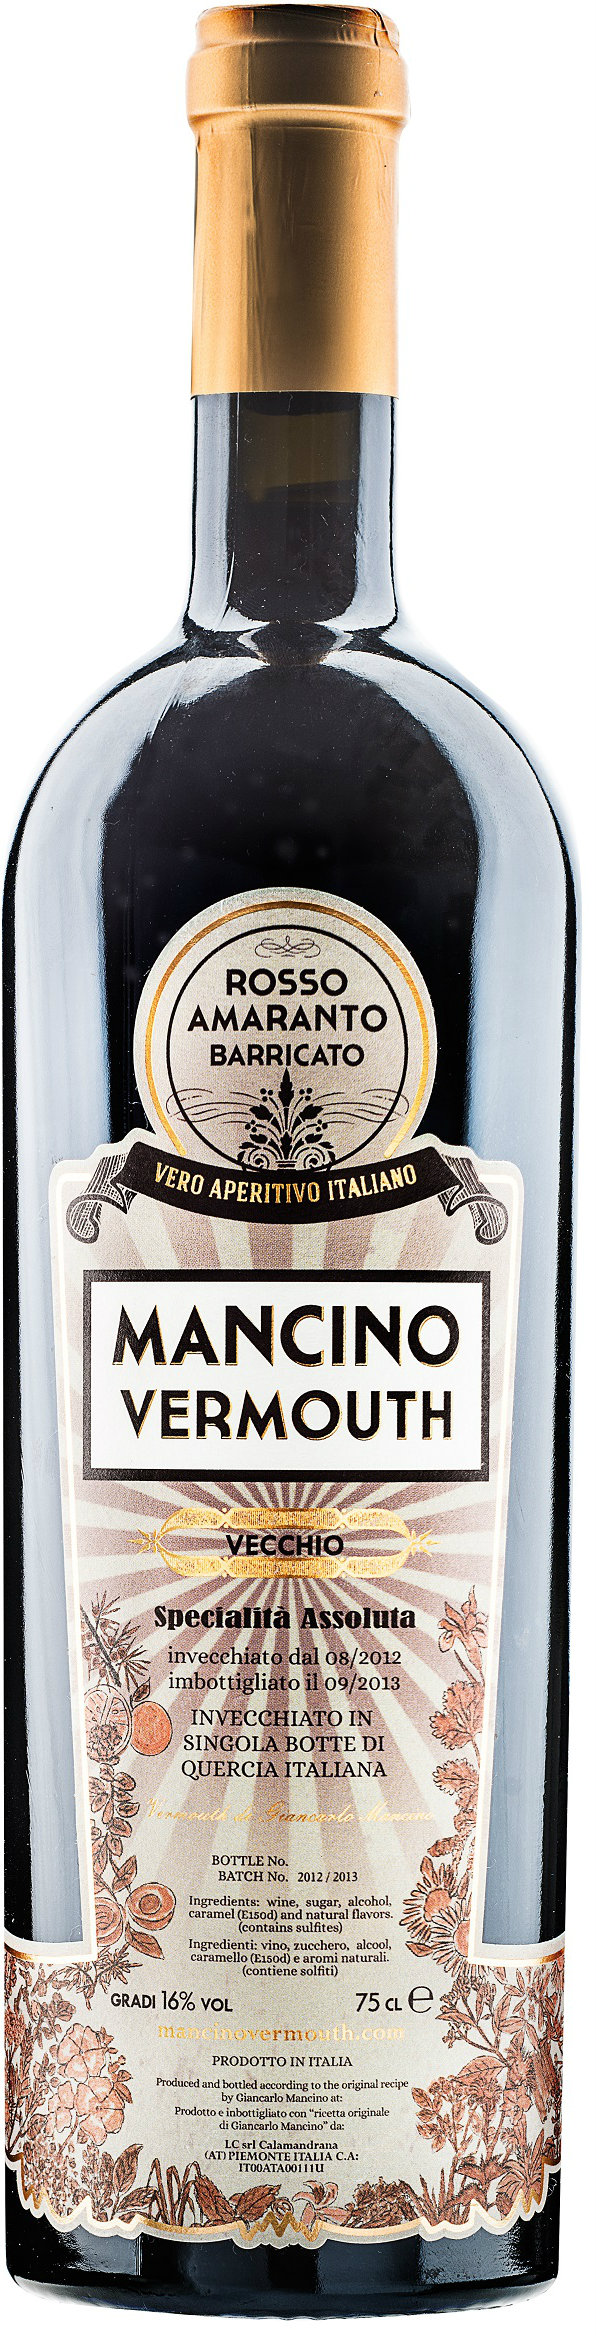 Mancino Vermouth - Vecchio 75cl Bottle